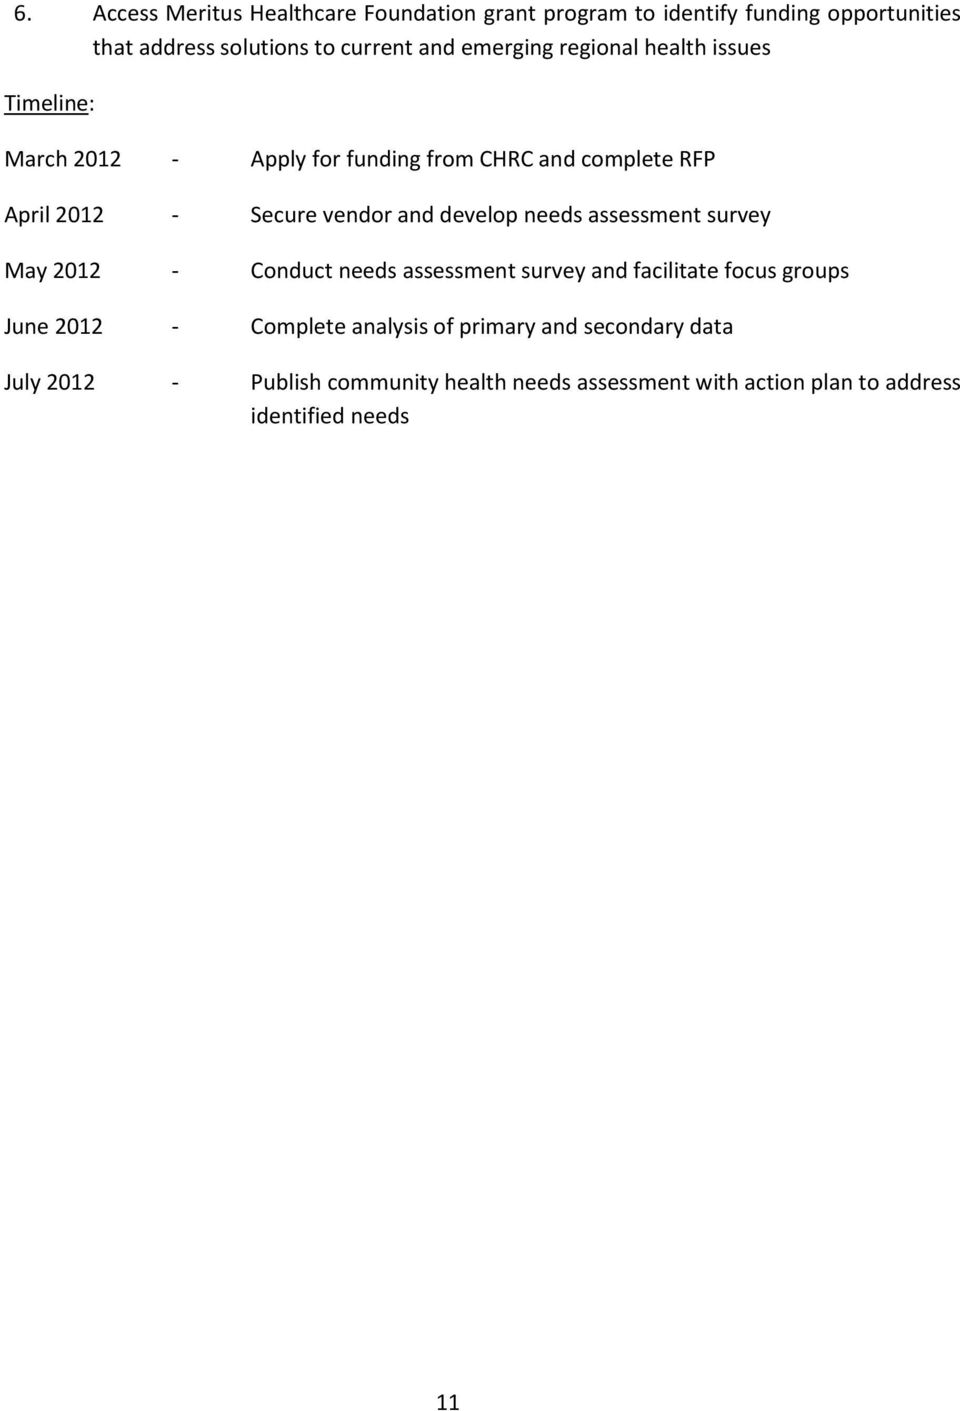 and develop needs assessment survey May 2012 - Conduct needs assessment survey and facilitate focus groups June 2012 - Complete